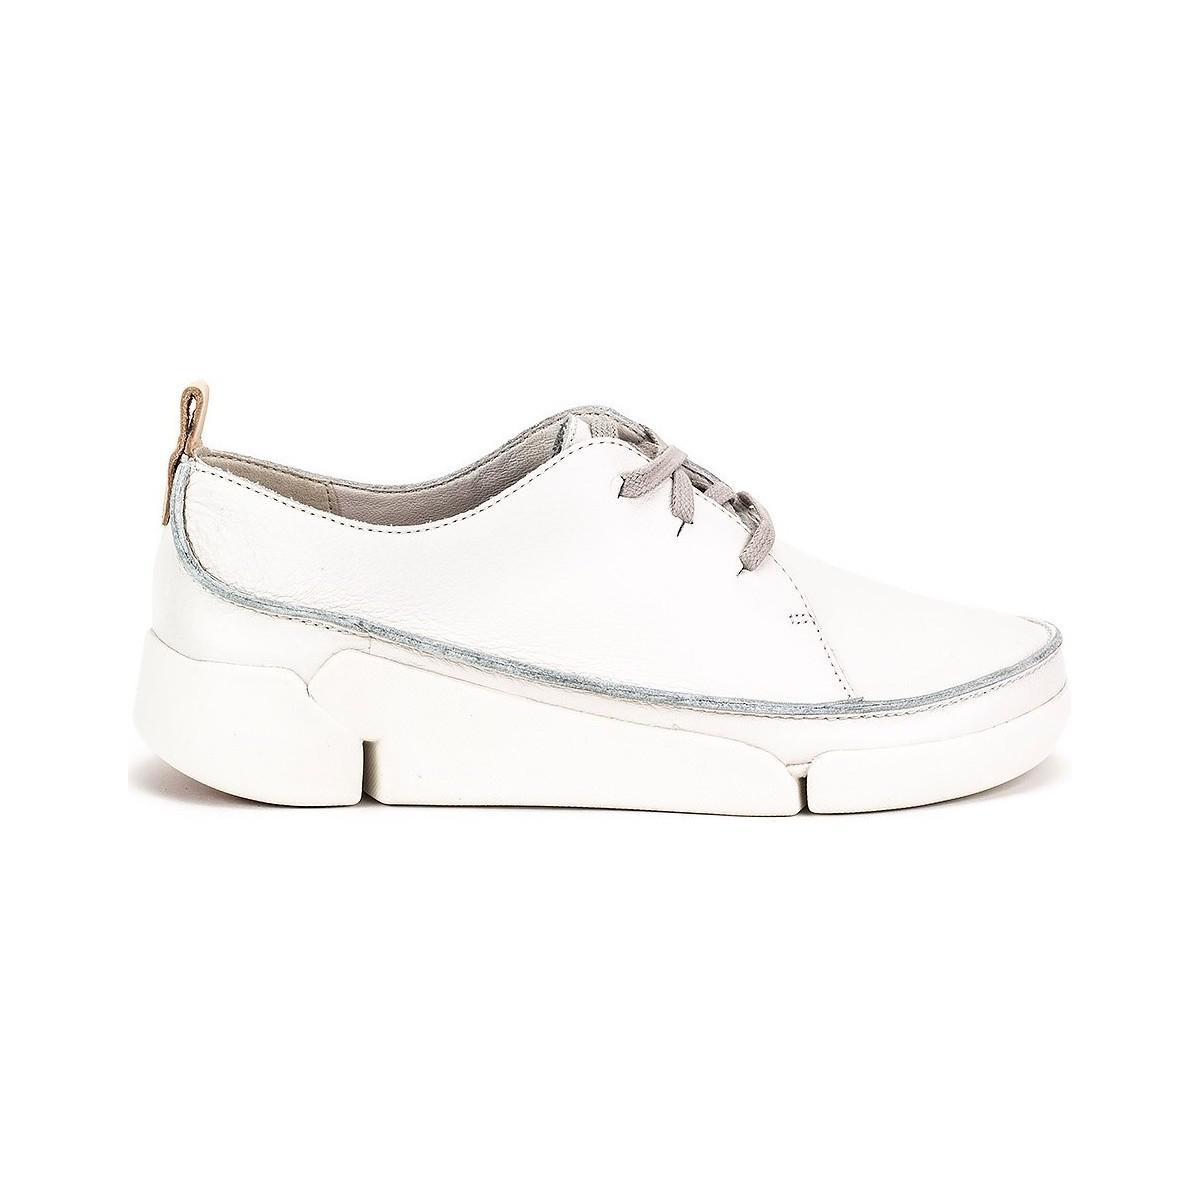 7bcaf76c908 Clarks Tri Clara Women s Loafers   Casual Shoes In White in White - Lyst